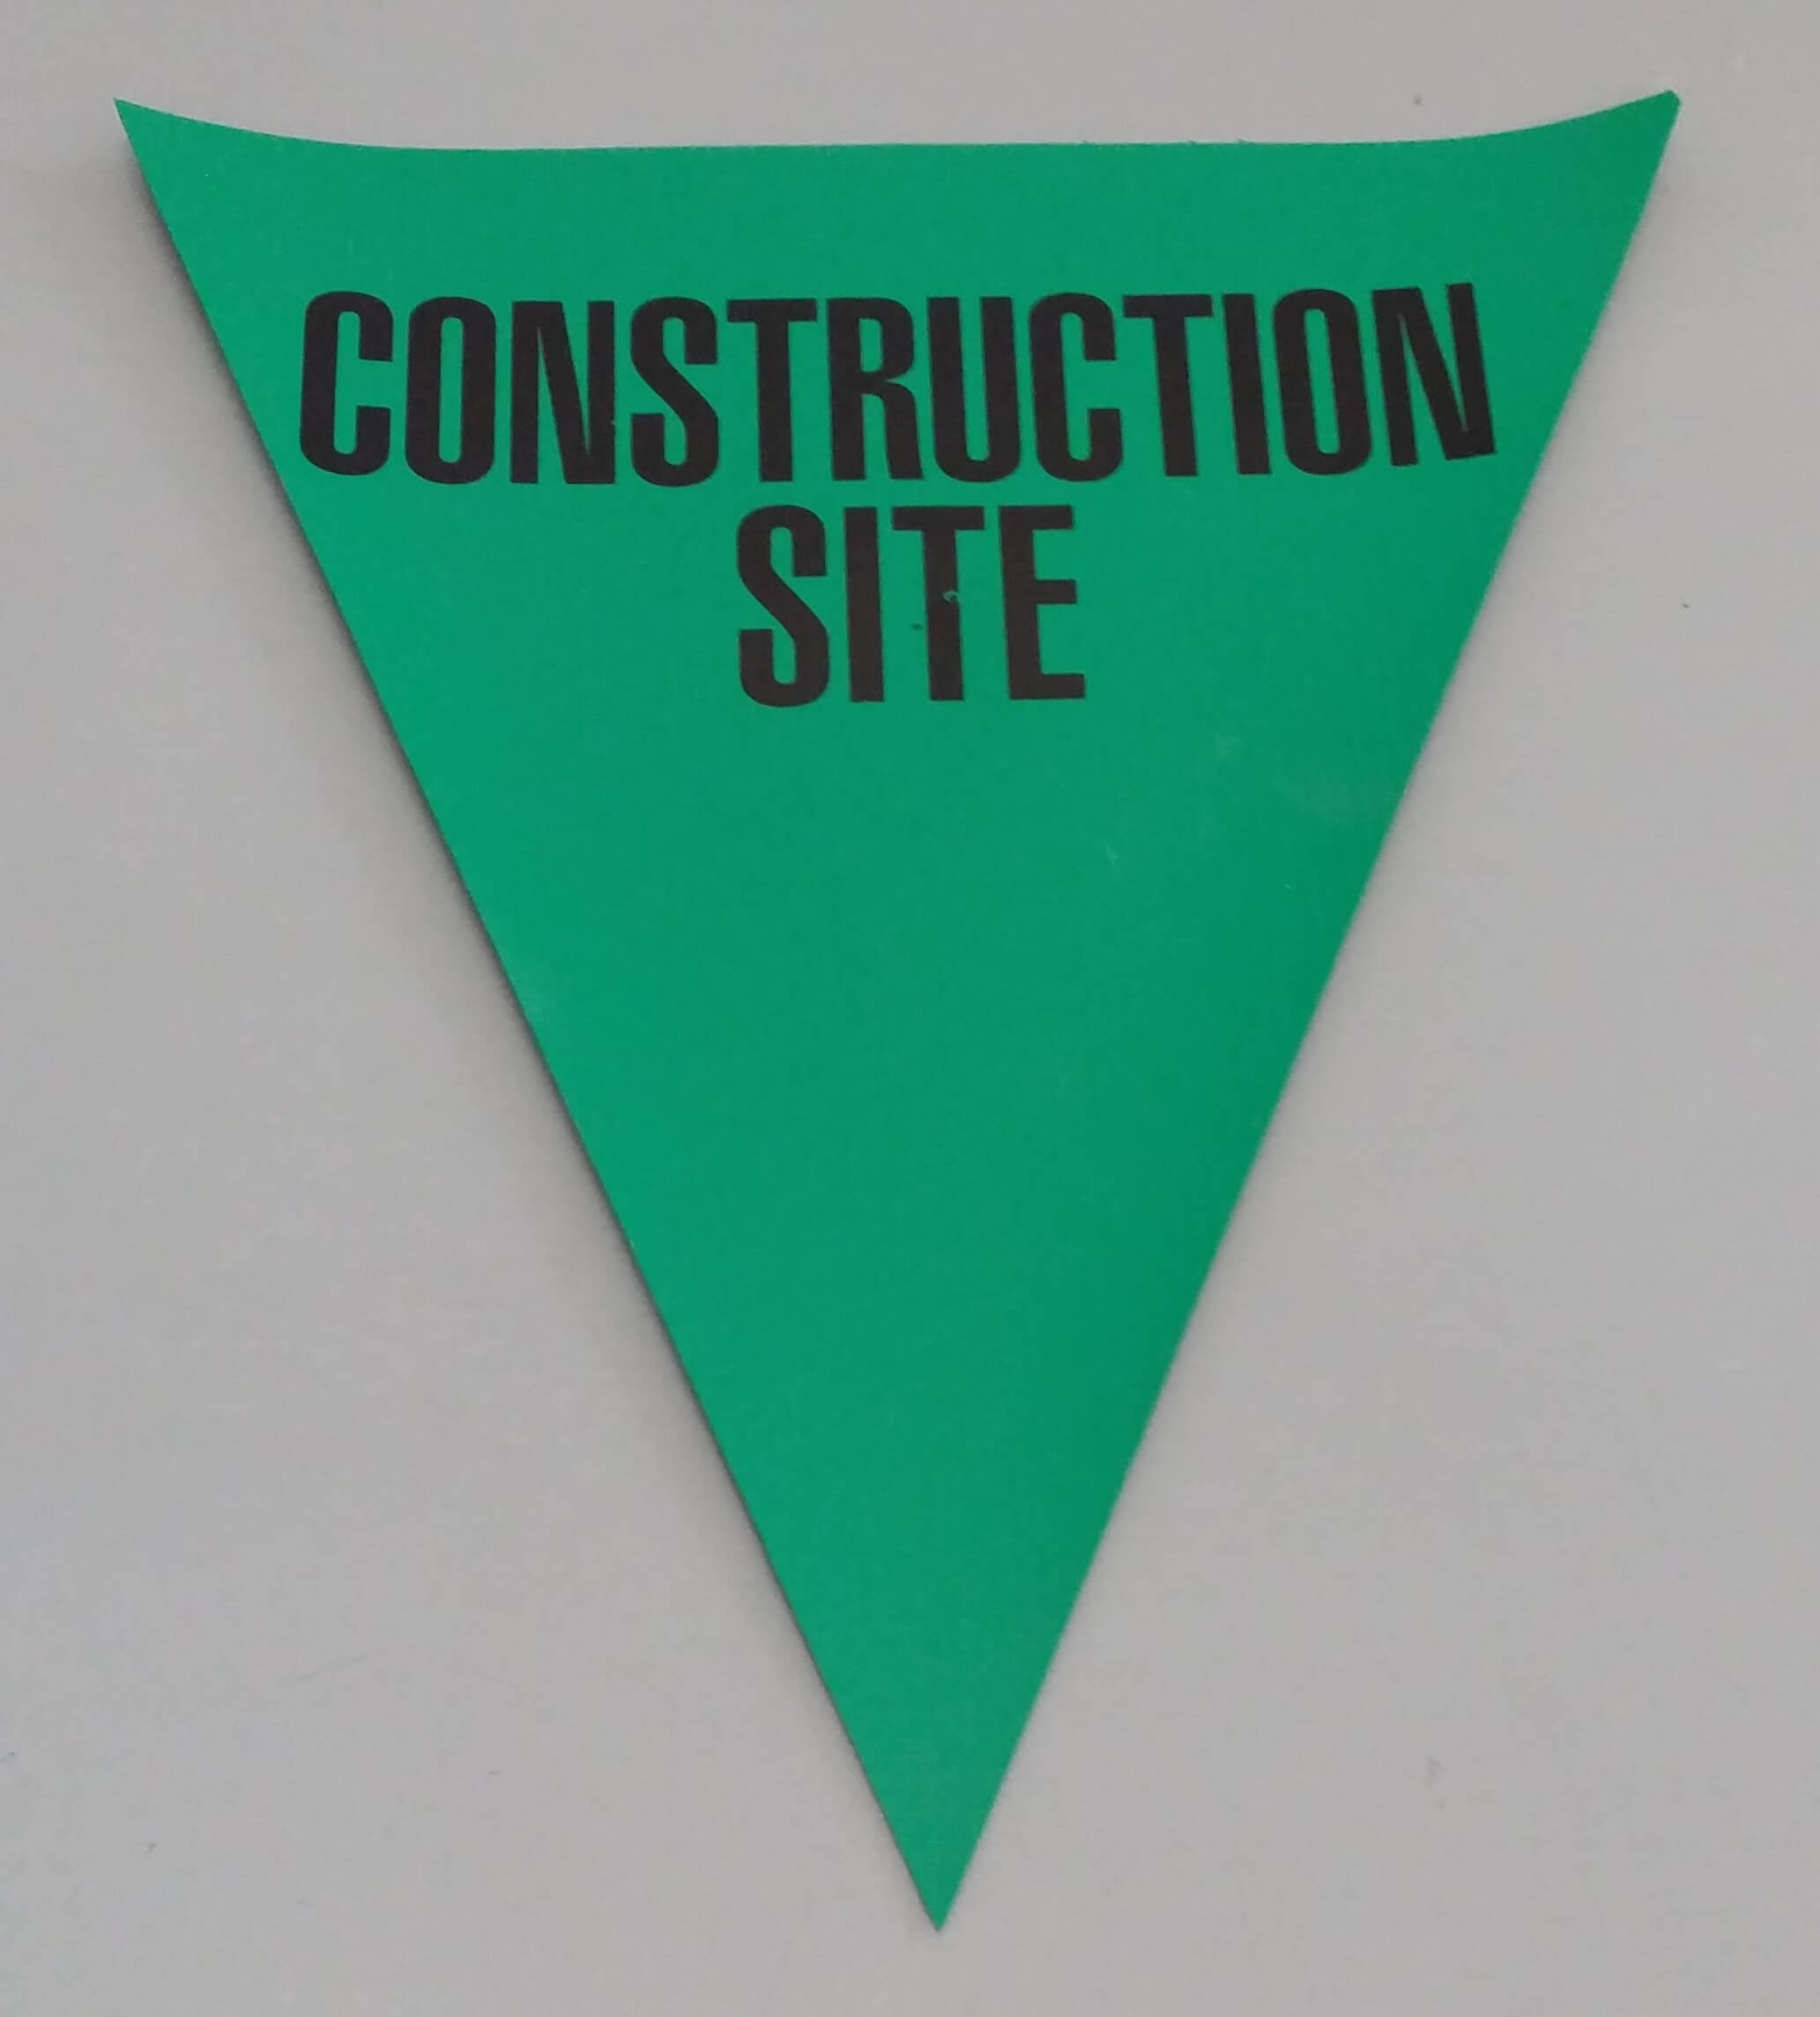 Construction Site (green)